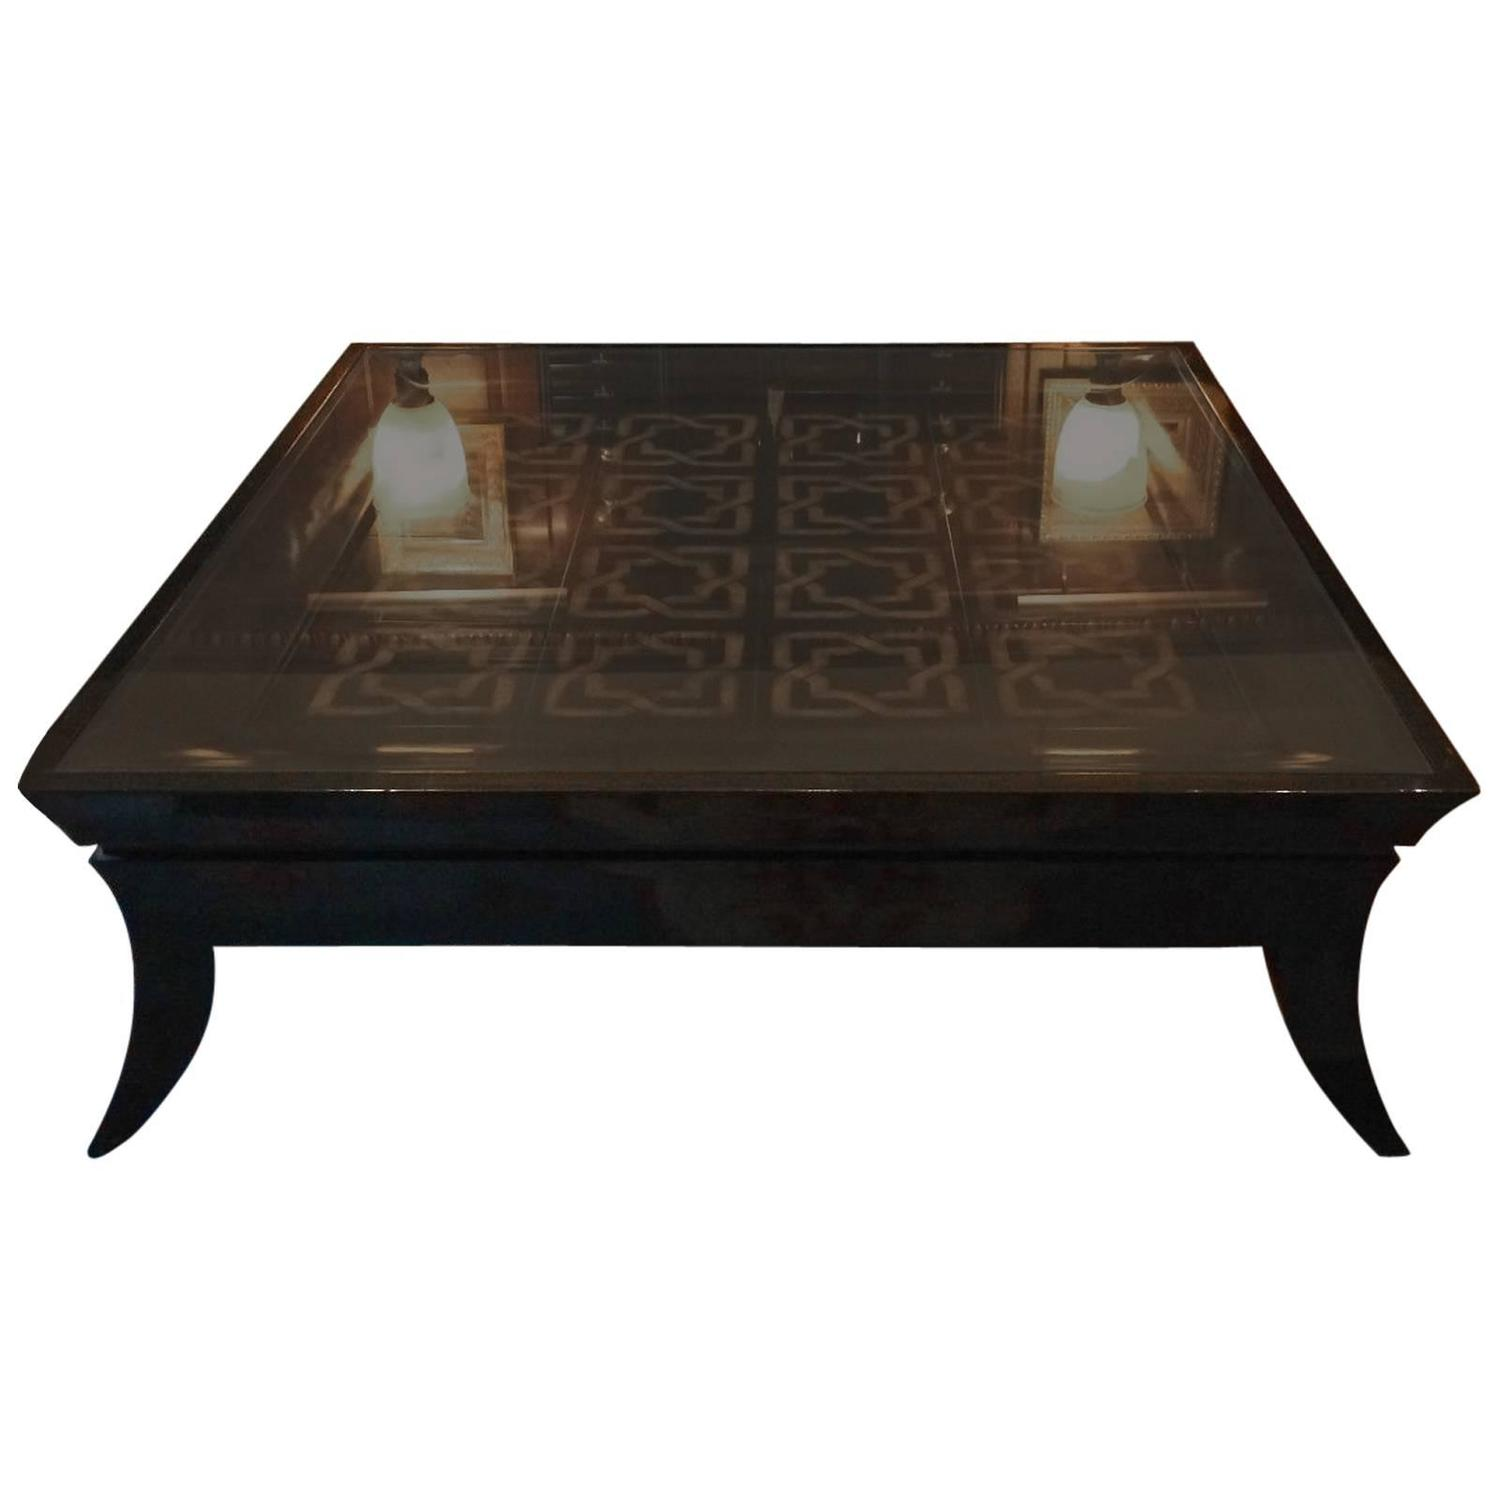 Large coffee table glass topped tiled modern at 1stdibs for Glass furniture